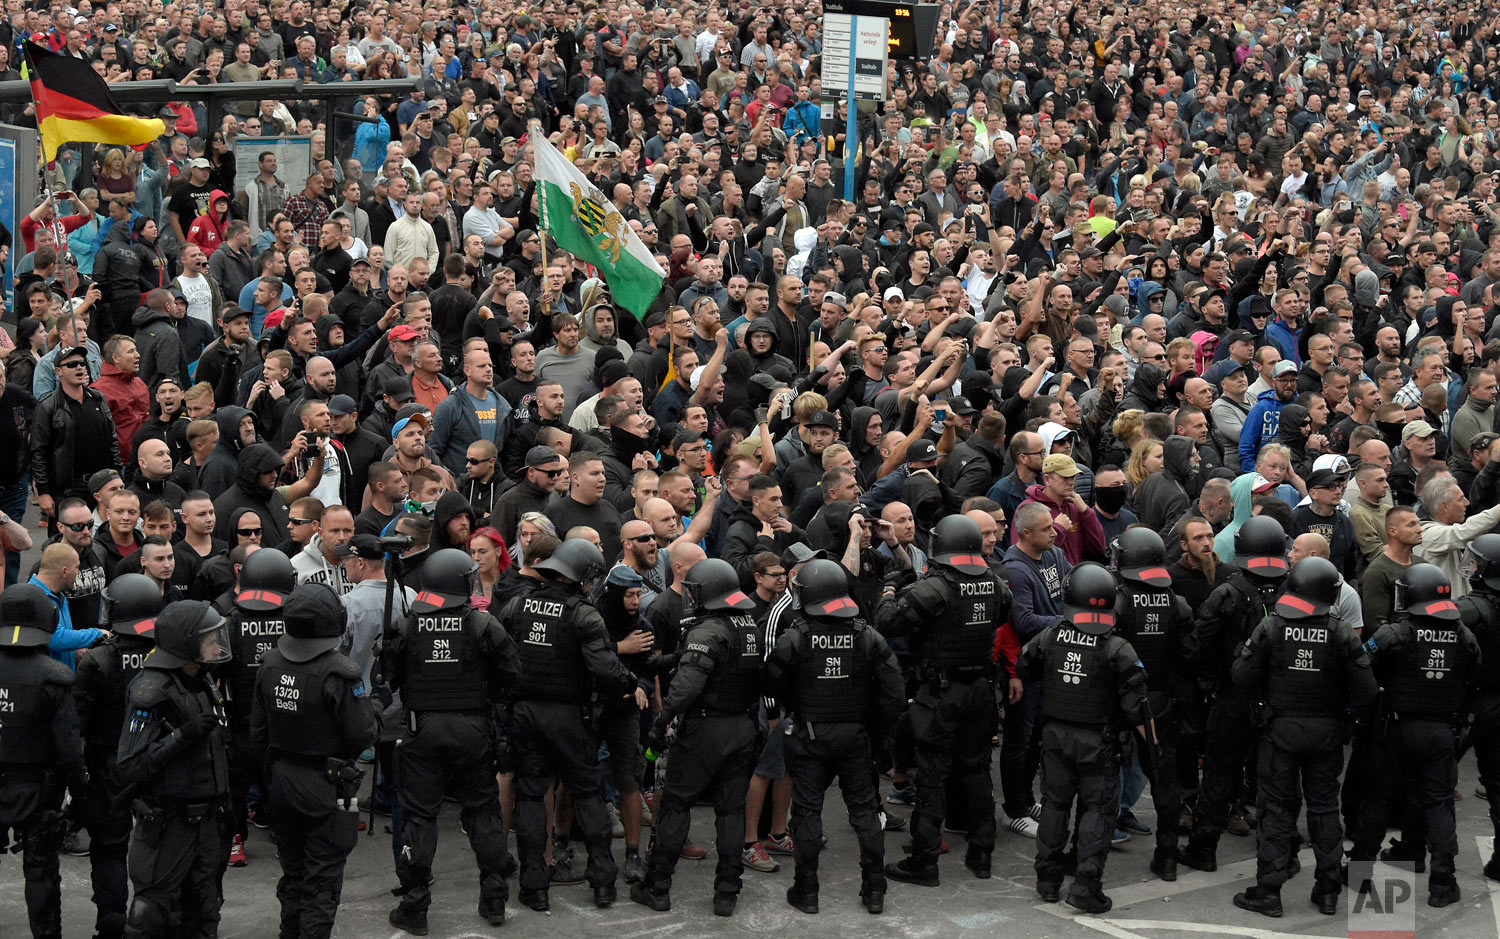 """Demonstrators shout during a far-right protest in Chemnitz, Germany, Monday, Aug. 27, 2018 after a man died and two others were injured in an altercation between several people of """"various nationalities"""" in the eastern German city of Chemnitz on Sunday. (AP Photo/Jens Meyer)"""